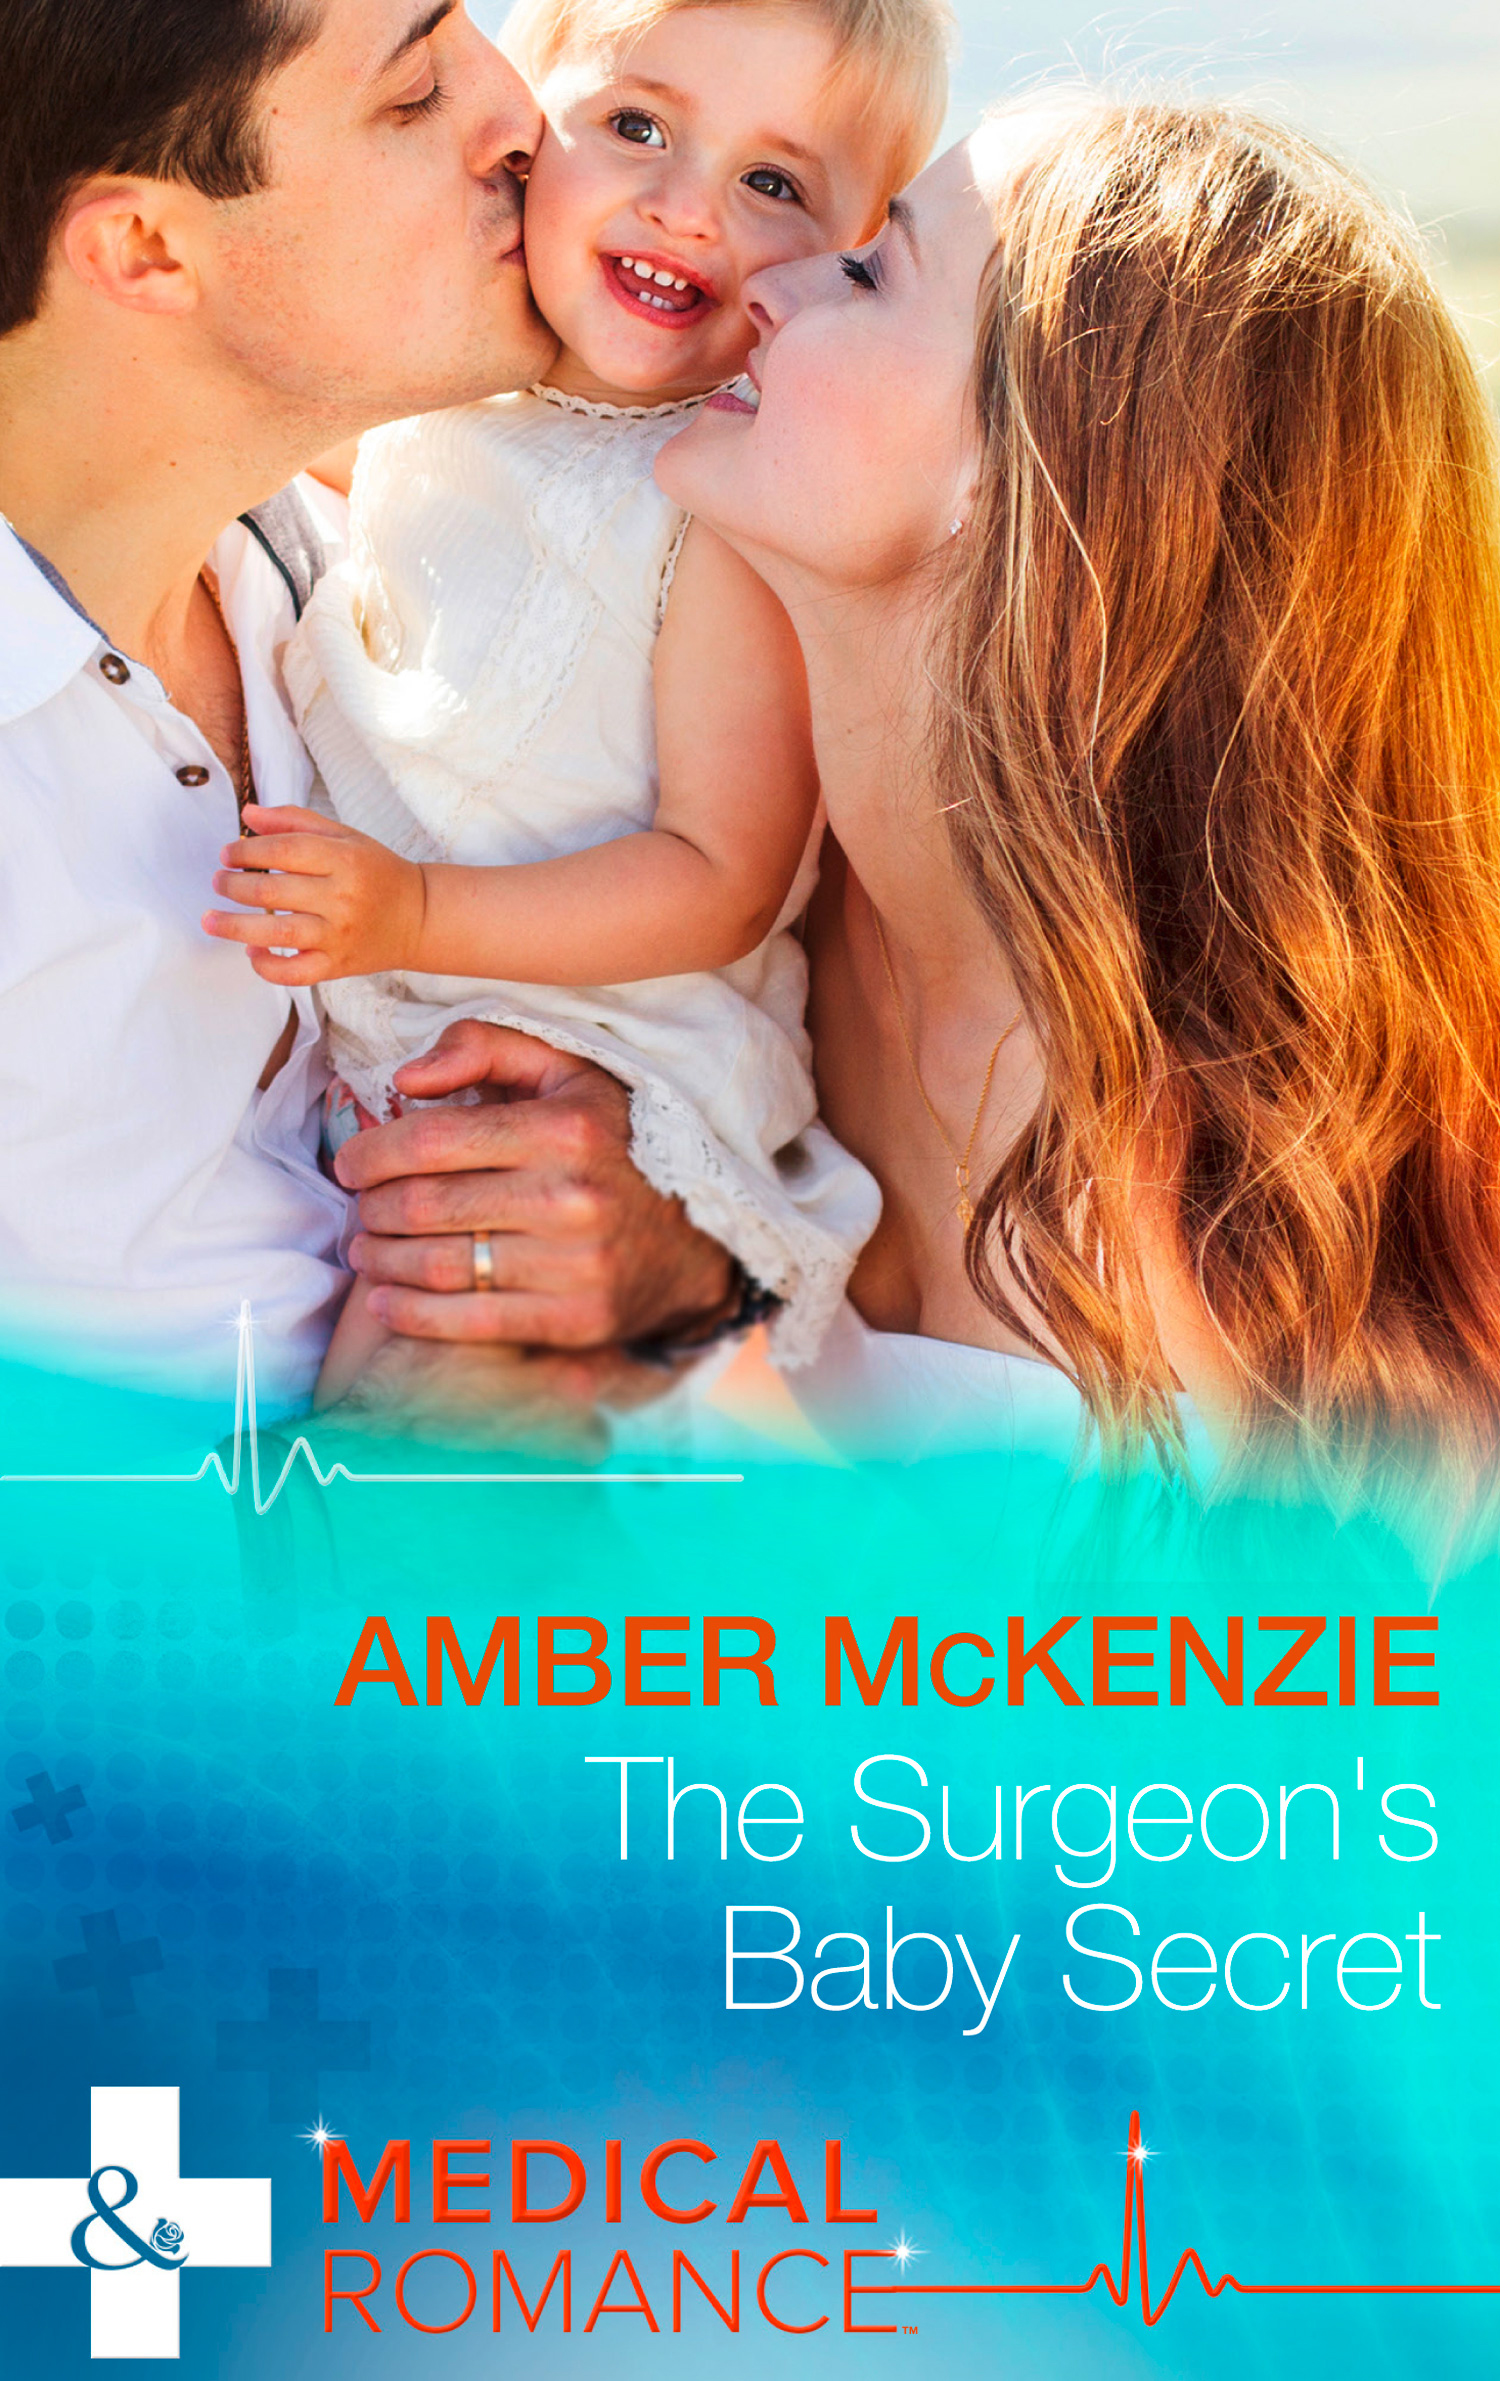 The Surgeon's Baby Secret